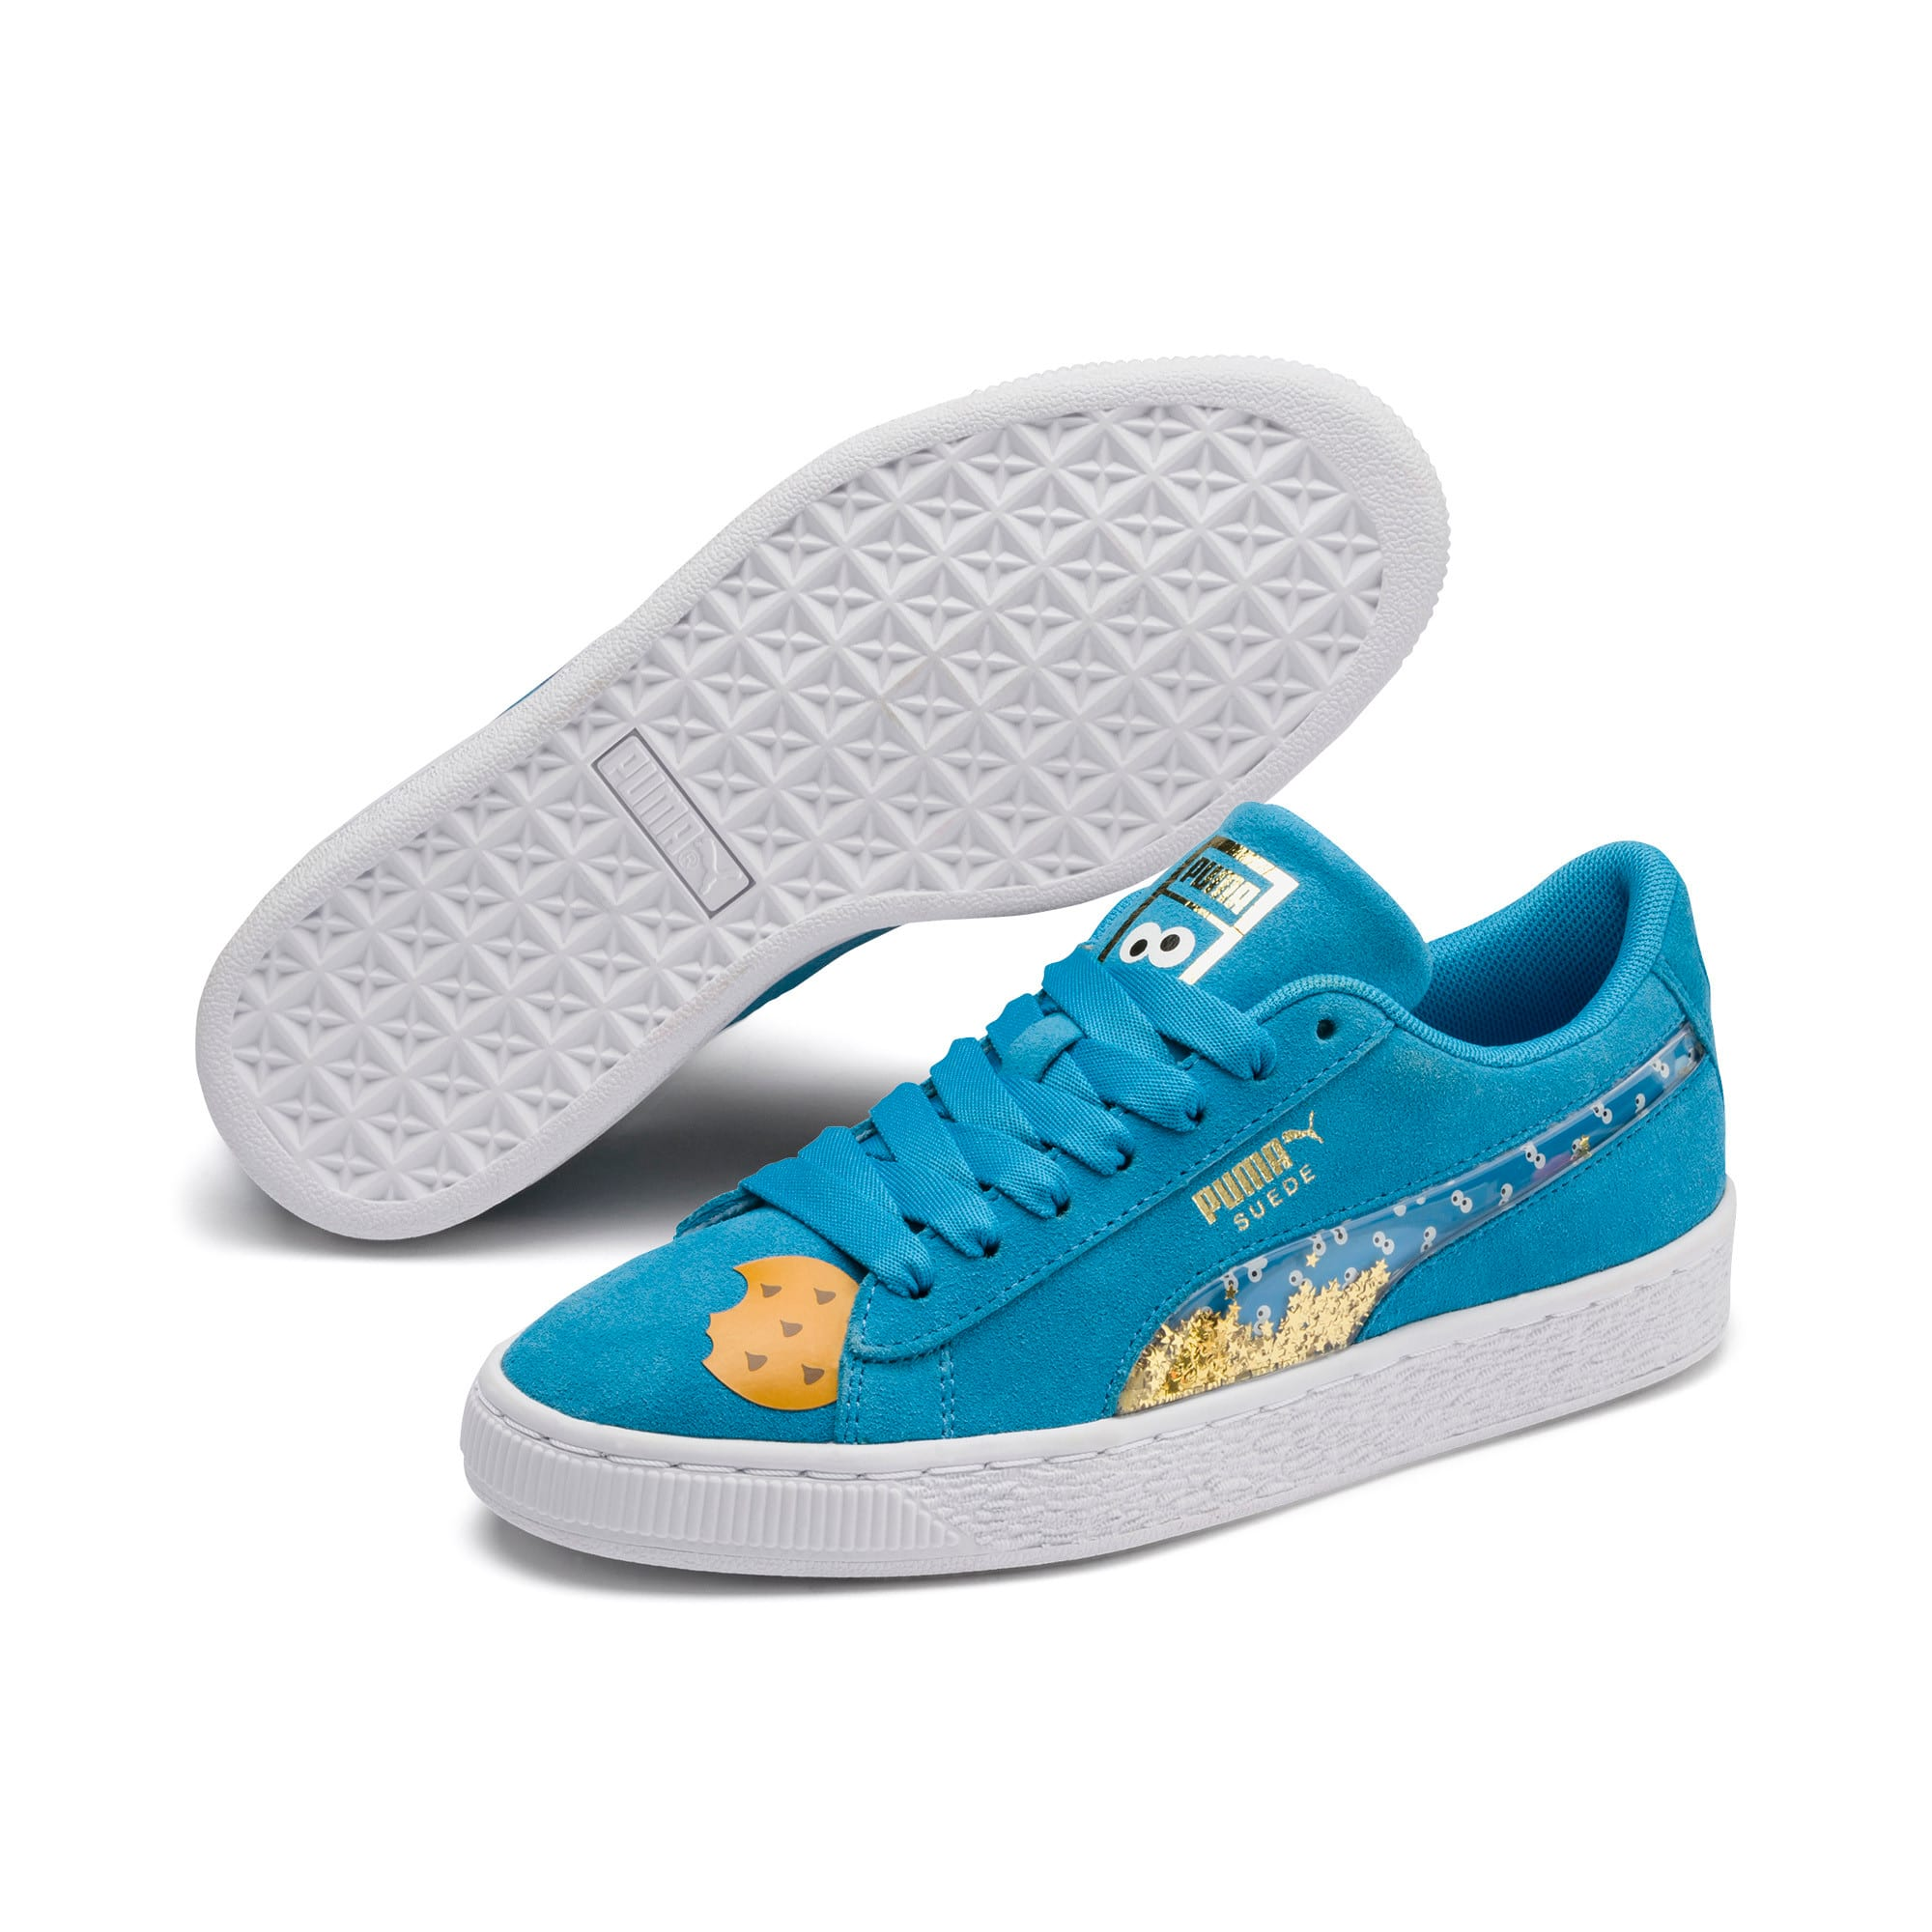 Thumbnail 2 of Sesamstraße 50 Suede Statement Youth Sneaker, Bleu Azur-Puma White, medium